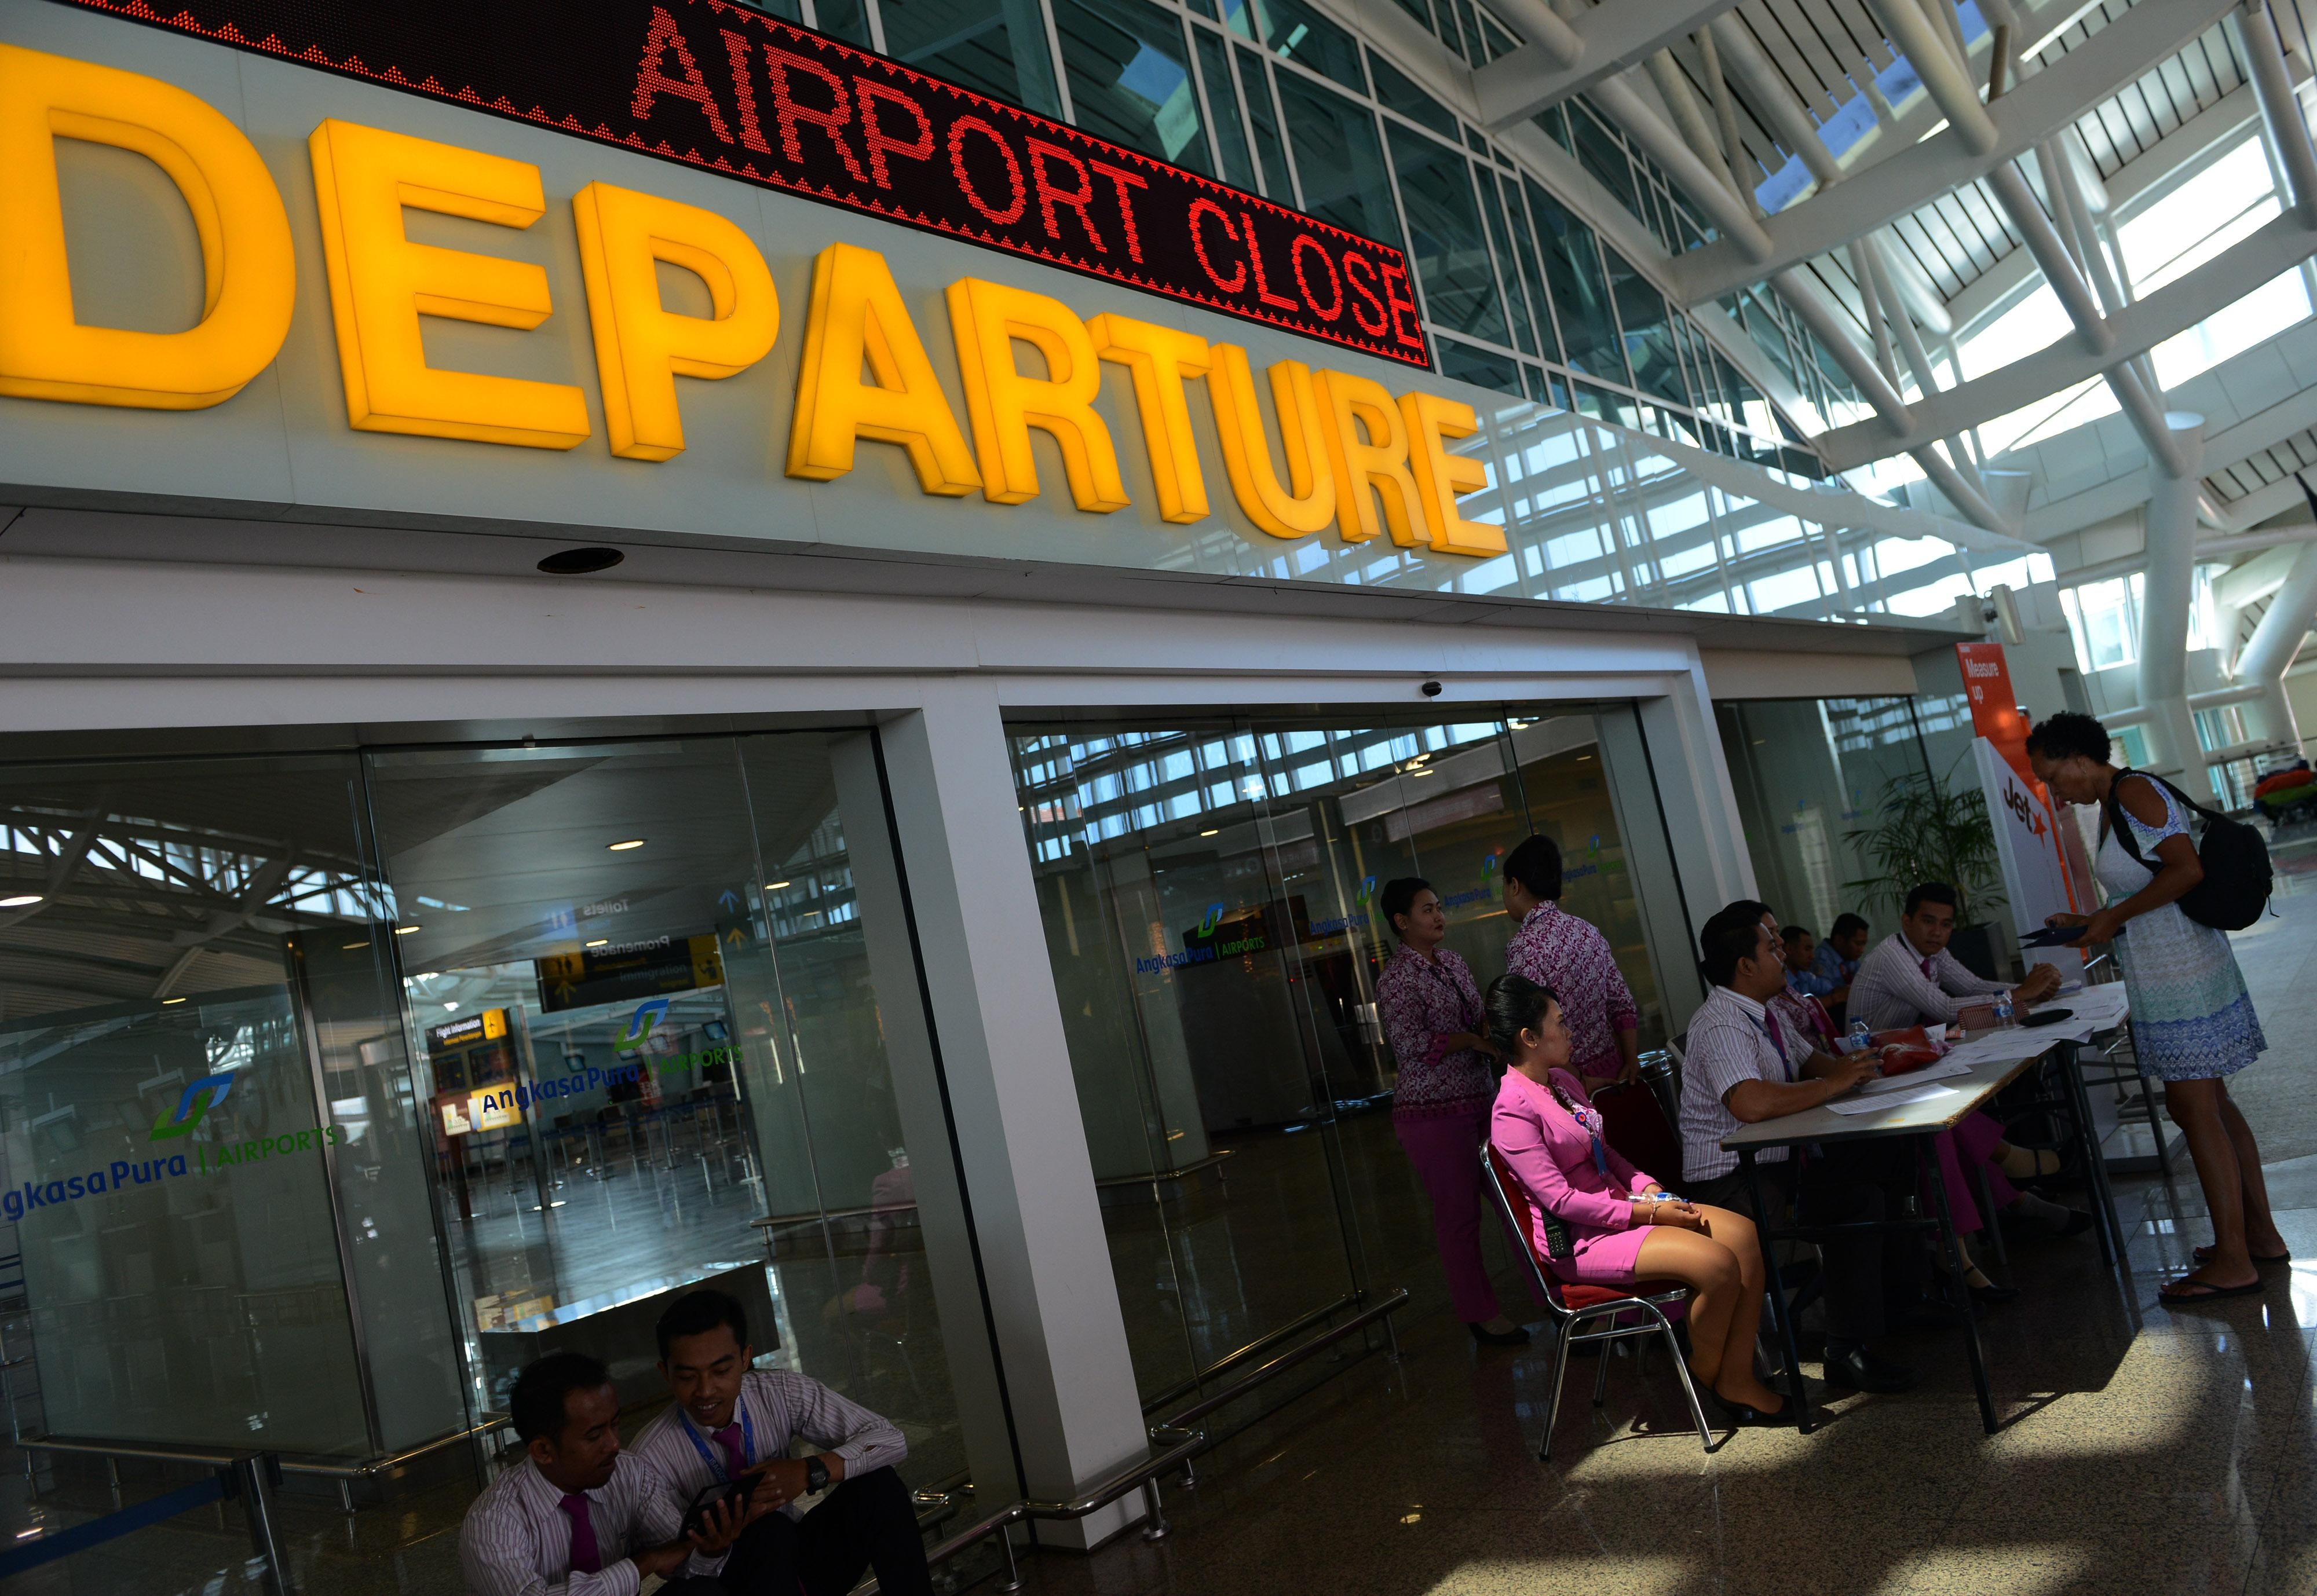 Indonesia Extends Bali Airport Closure Over Volcanic Ash